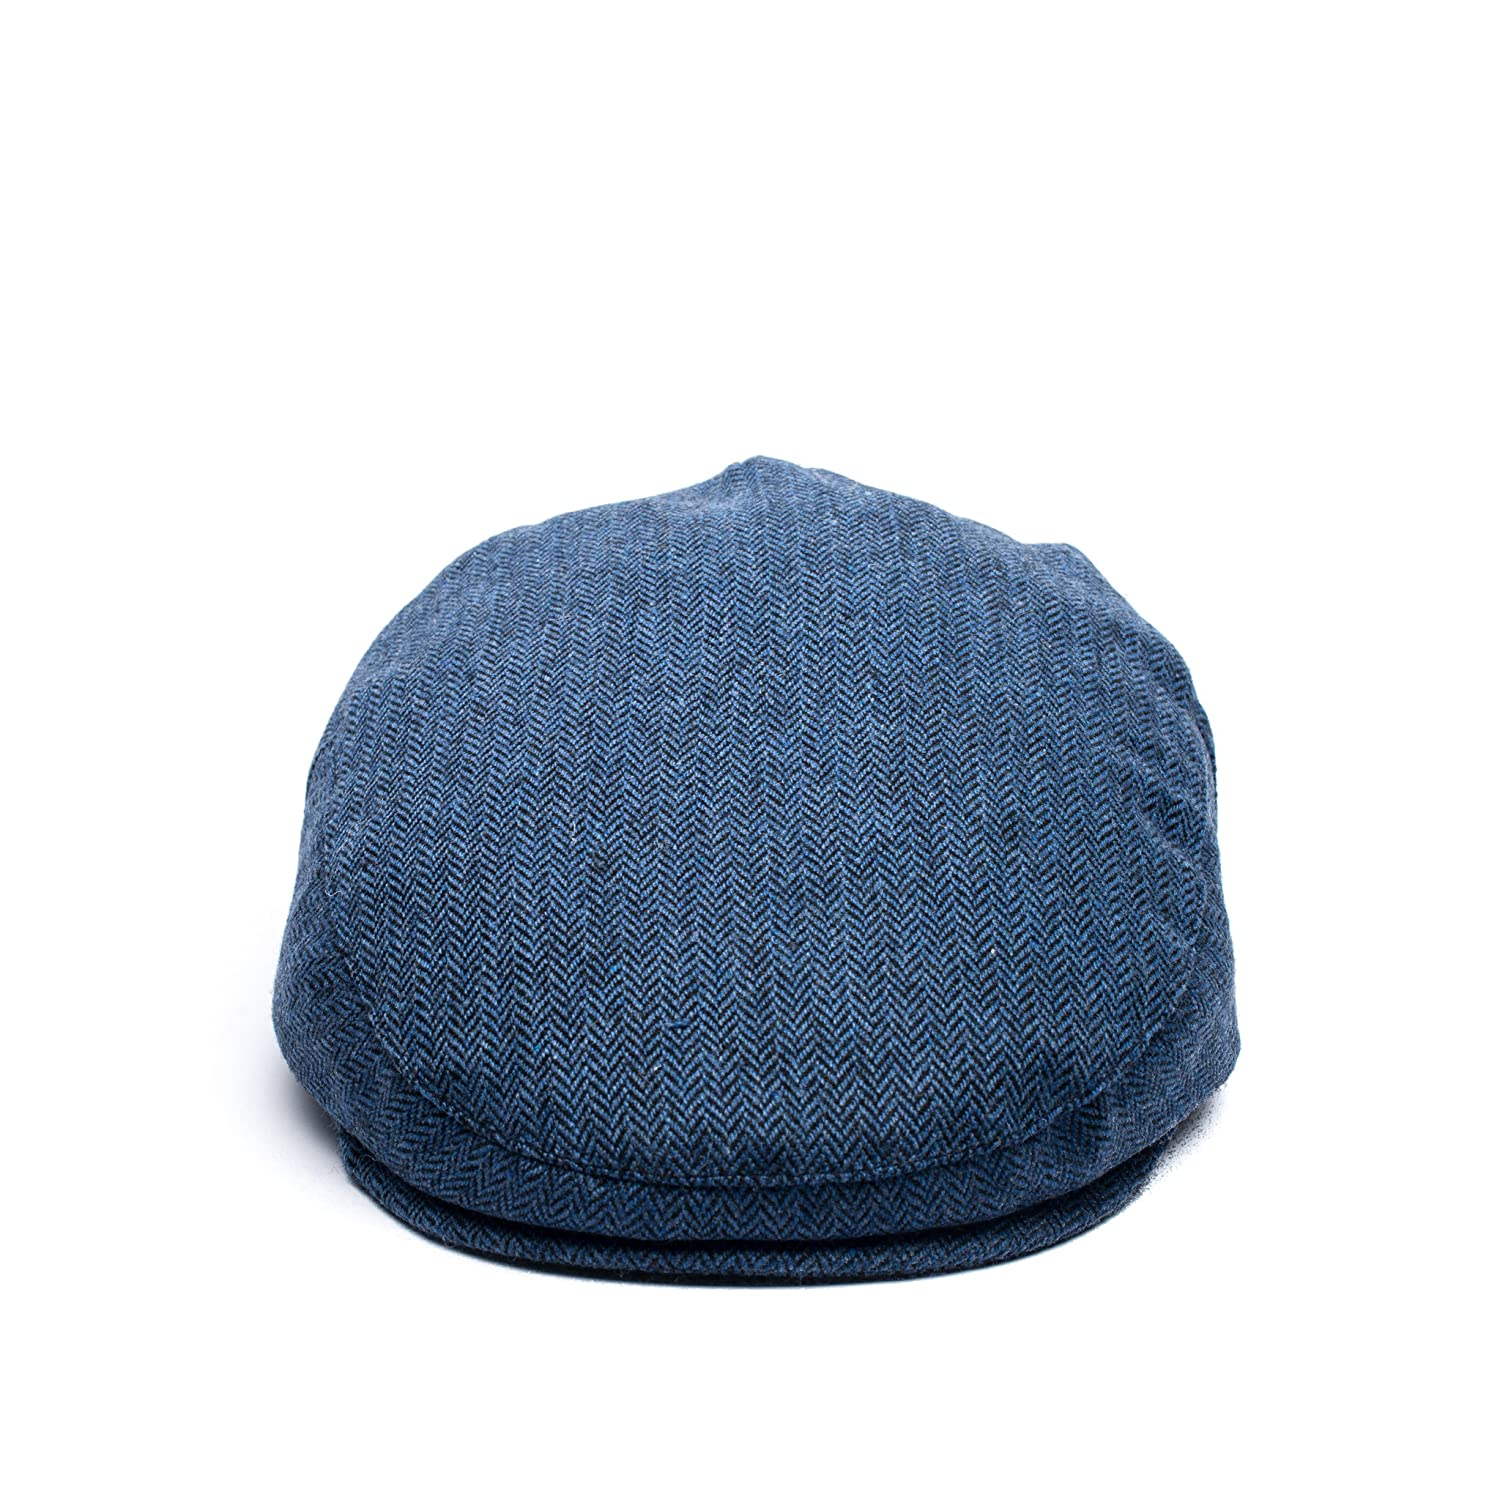 874067d1516d9 Amazon.com  Born to Love Flat Scally Cap - Boy s Tweed Page Boy Newsboy Baby  Kids Driver Cap Hat  Clothing